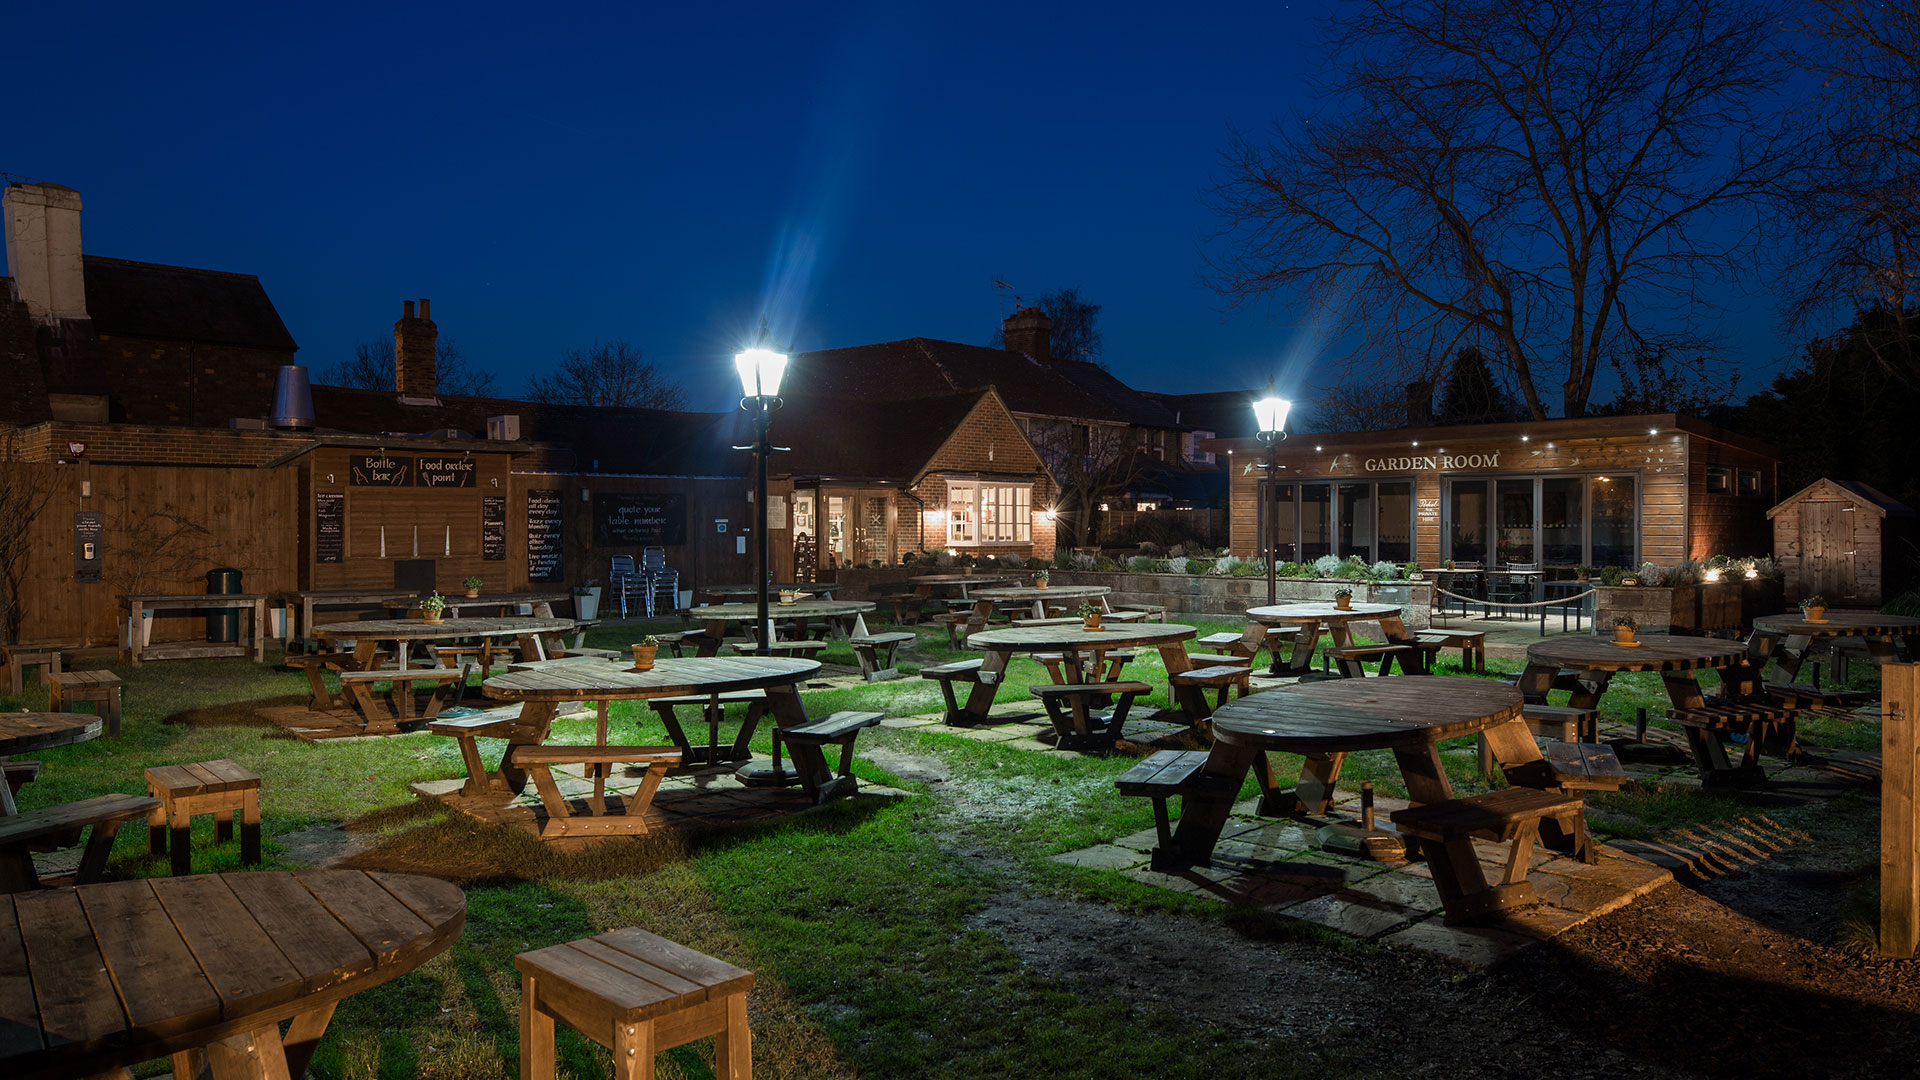 Photo of The Cricketers Pub Garden at Night